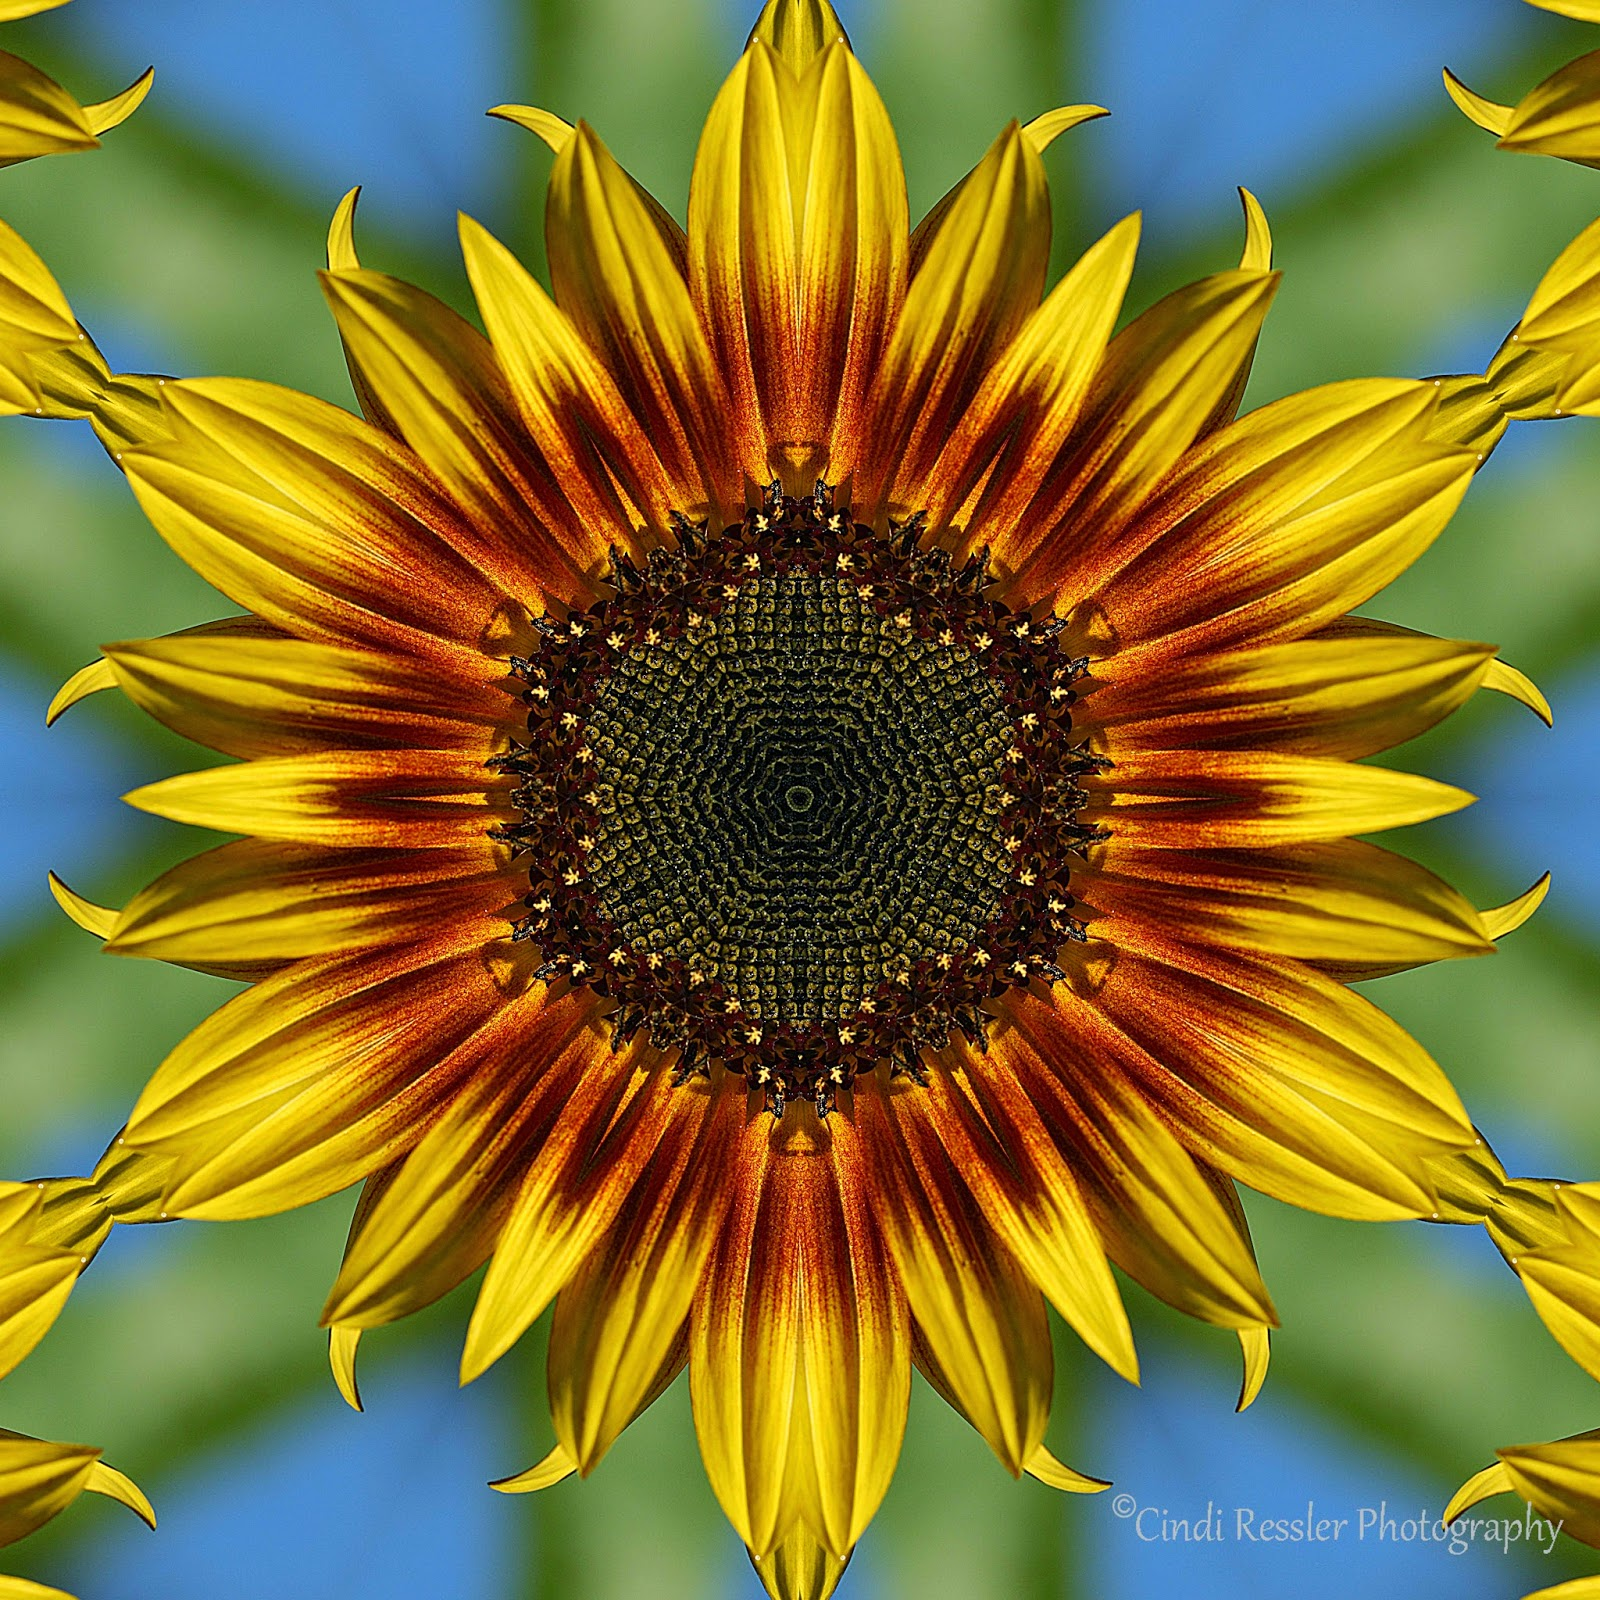 http://fineartamerica.com/featured/sunflower-kaleidoscope-cindi-ressler.html